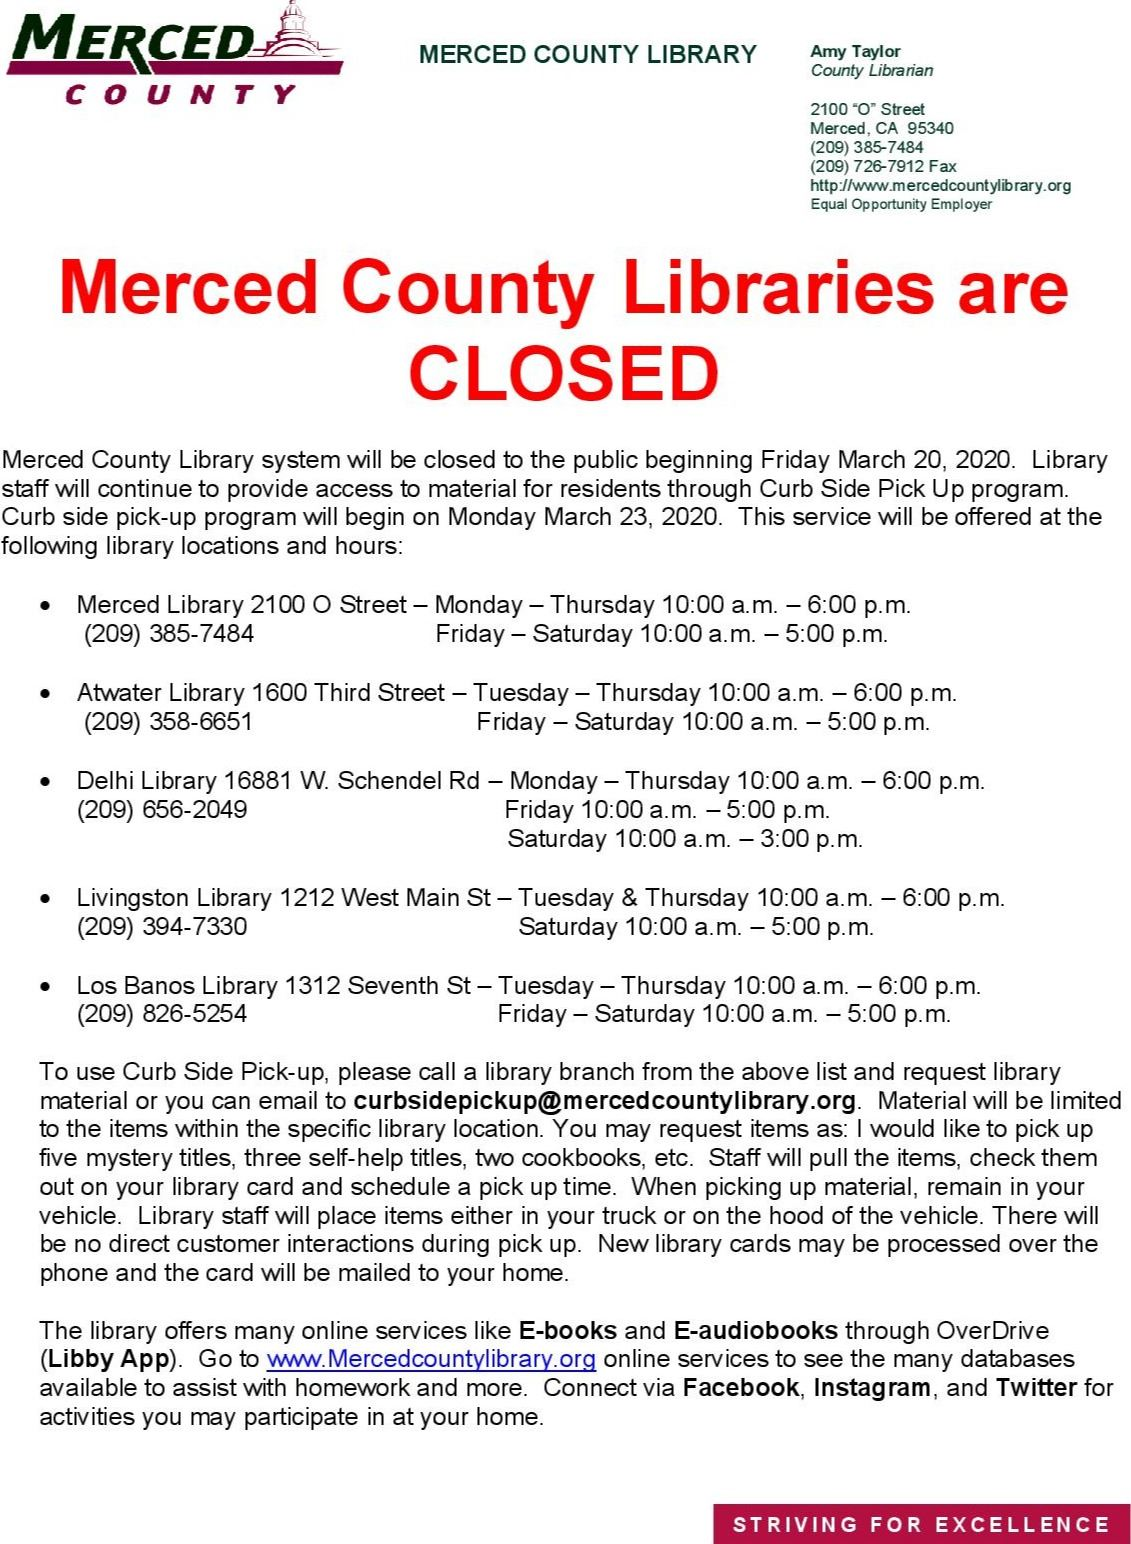 Merced County libraries are closed